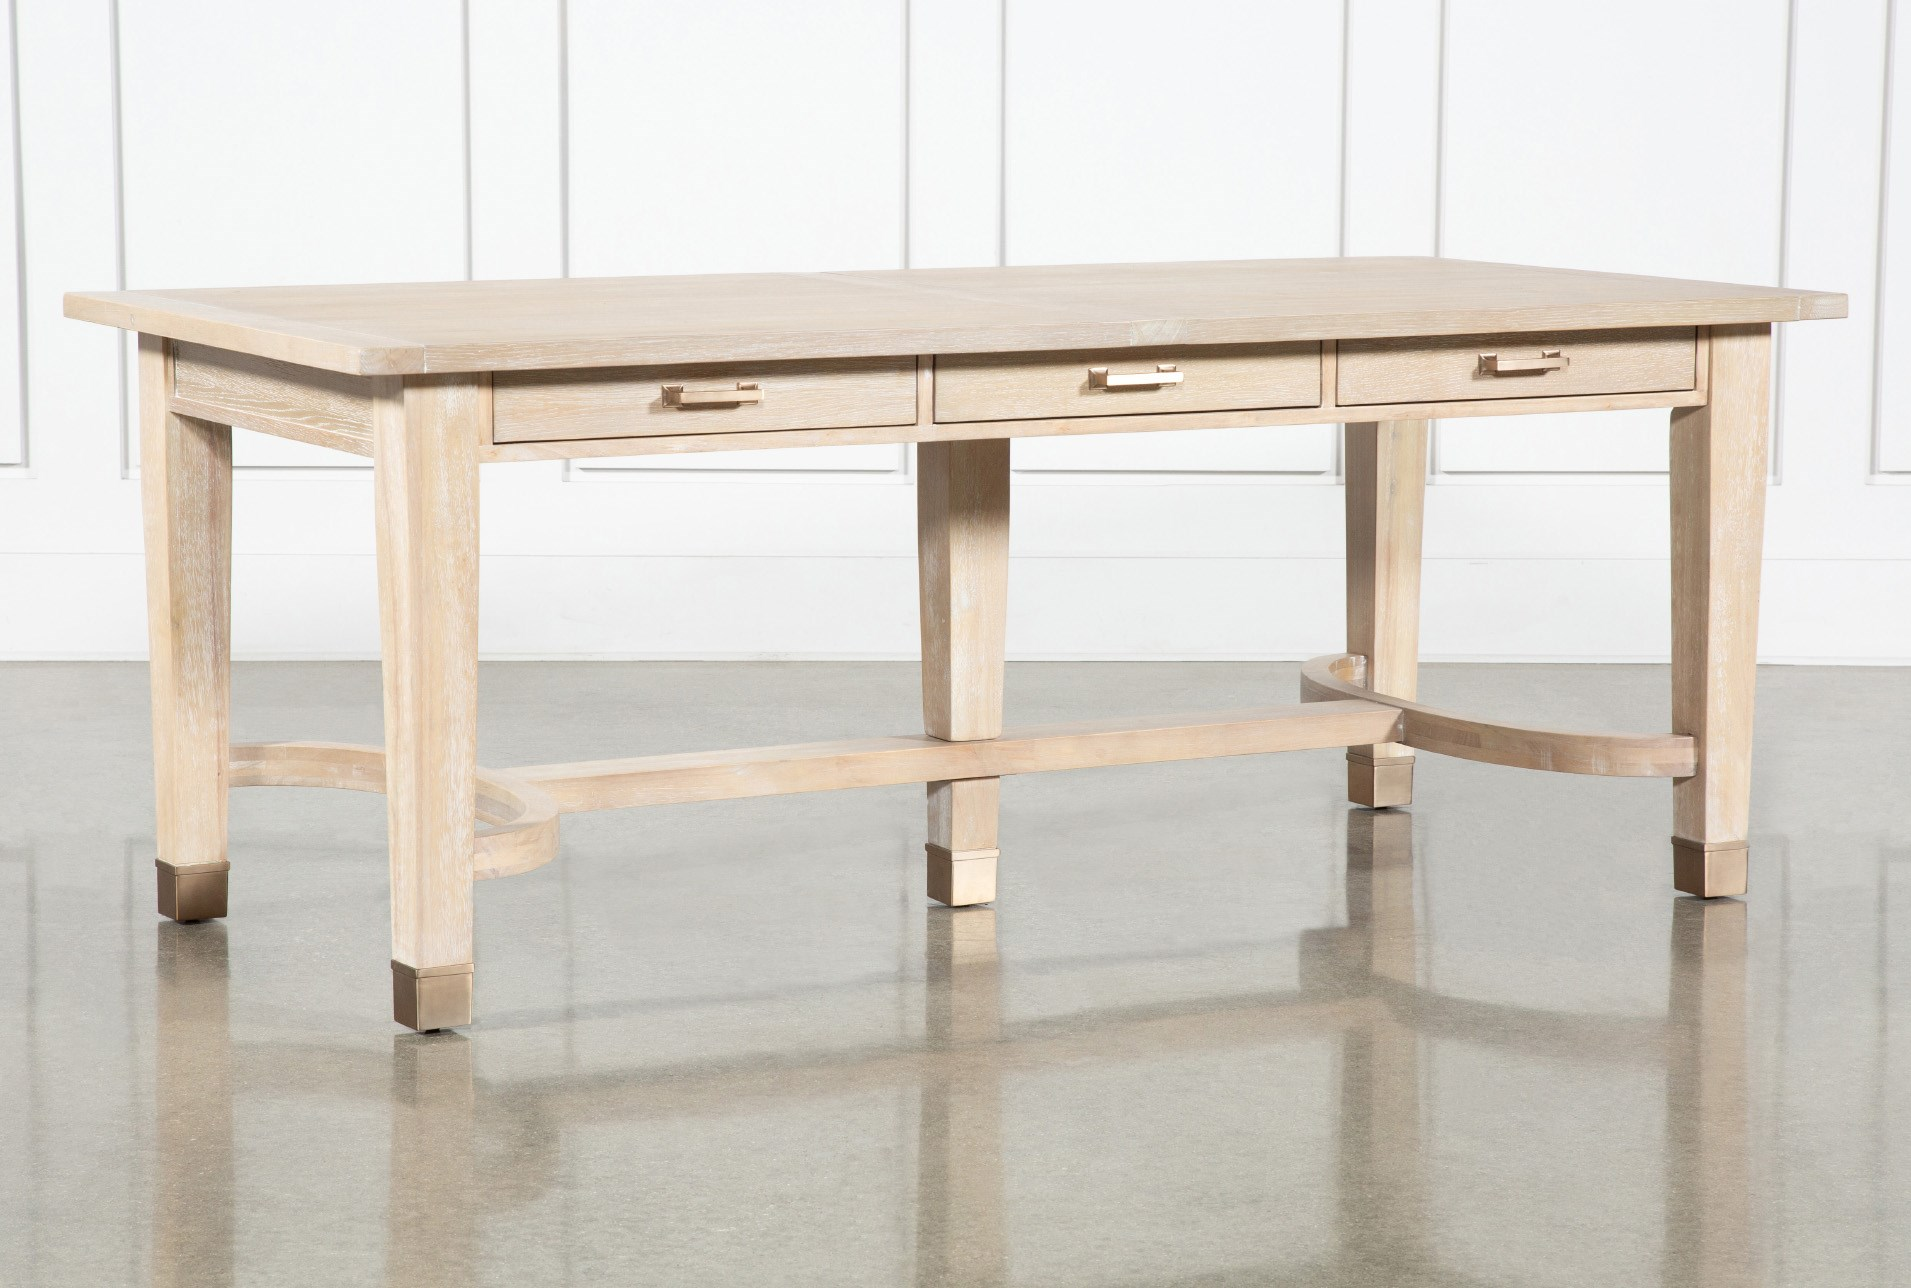 Nate Berkus Gold Coffee Table.Gramercy Rectangle Dining Table By Nate Berkus And Jeremiah Brent